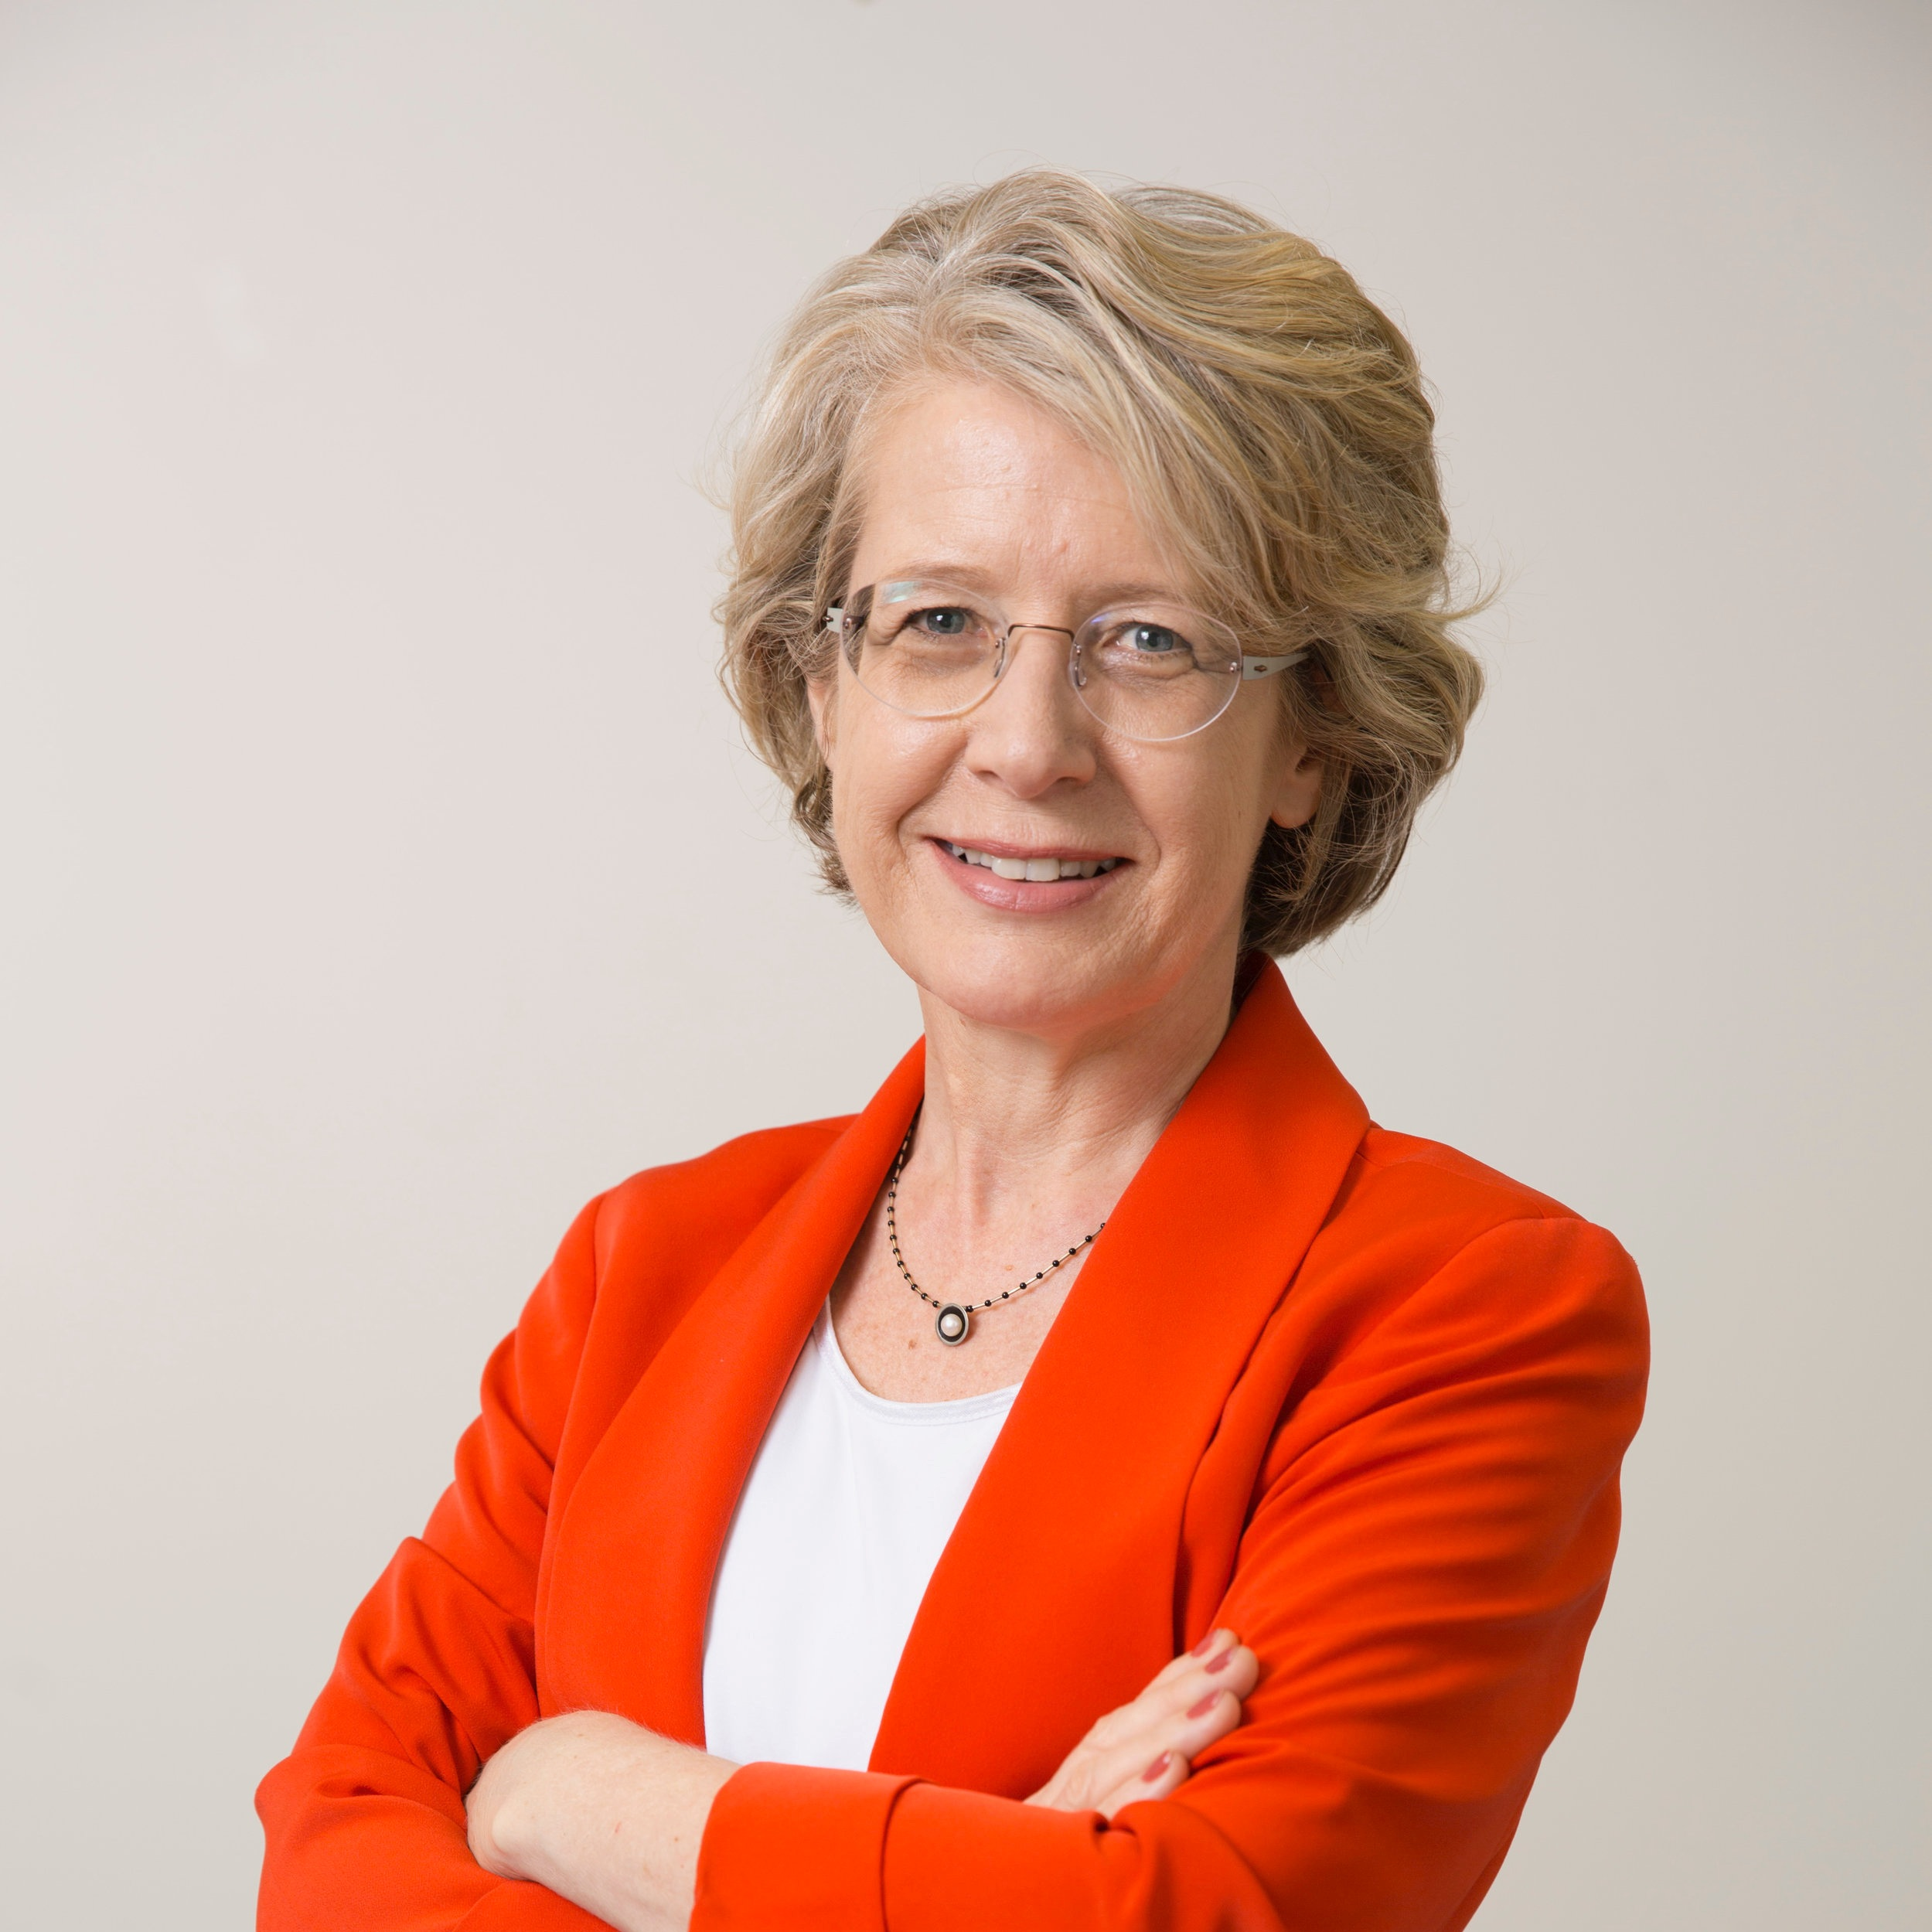 Professor Kerri-Lee Krause Deputy Vice-Chancellor and Professor of Higher Education, La Trobe University